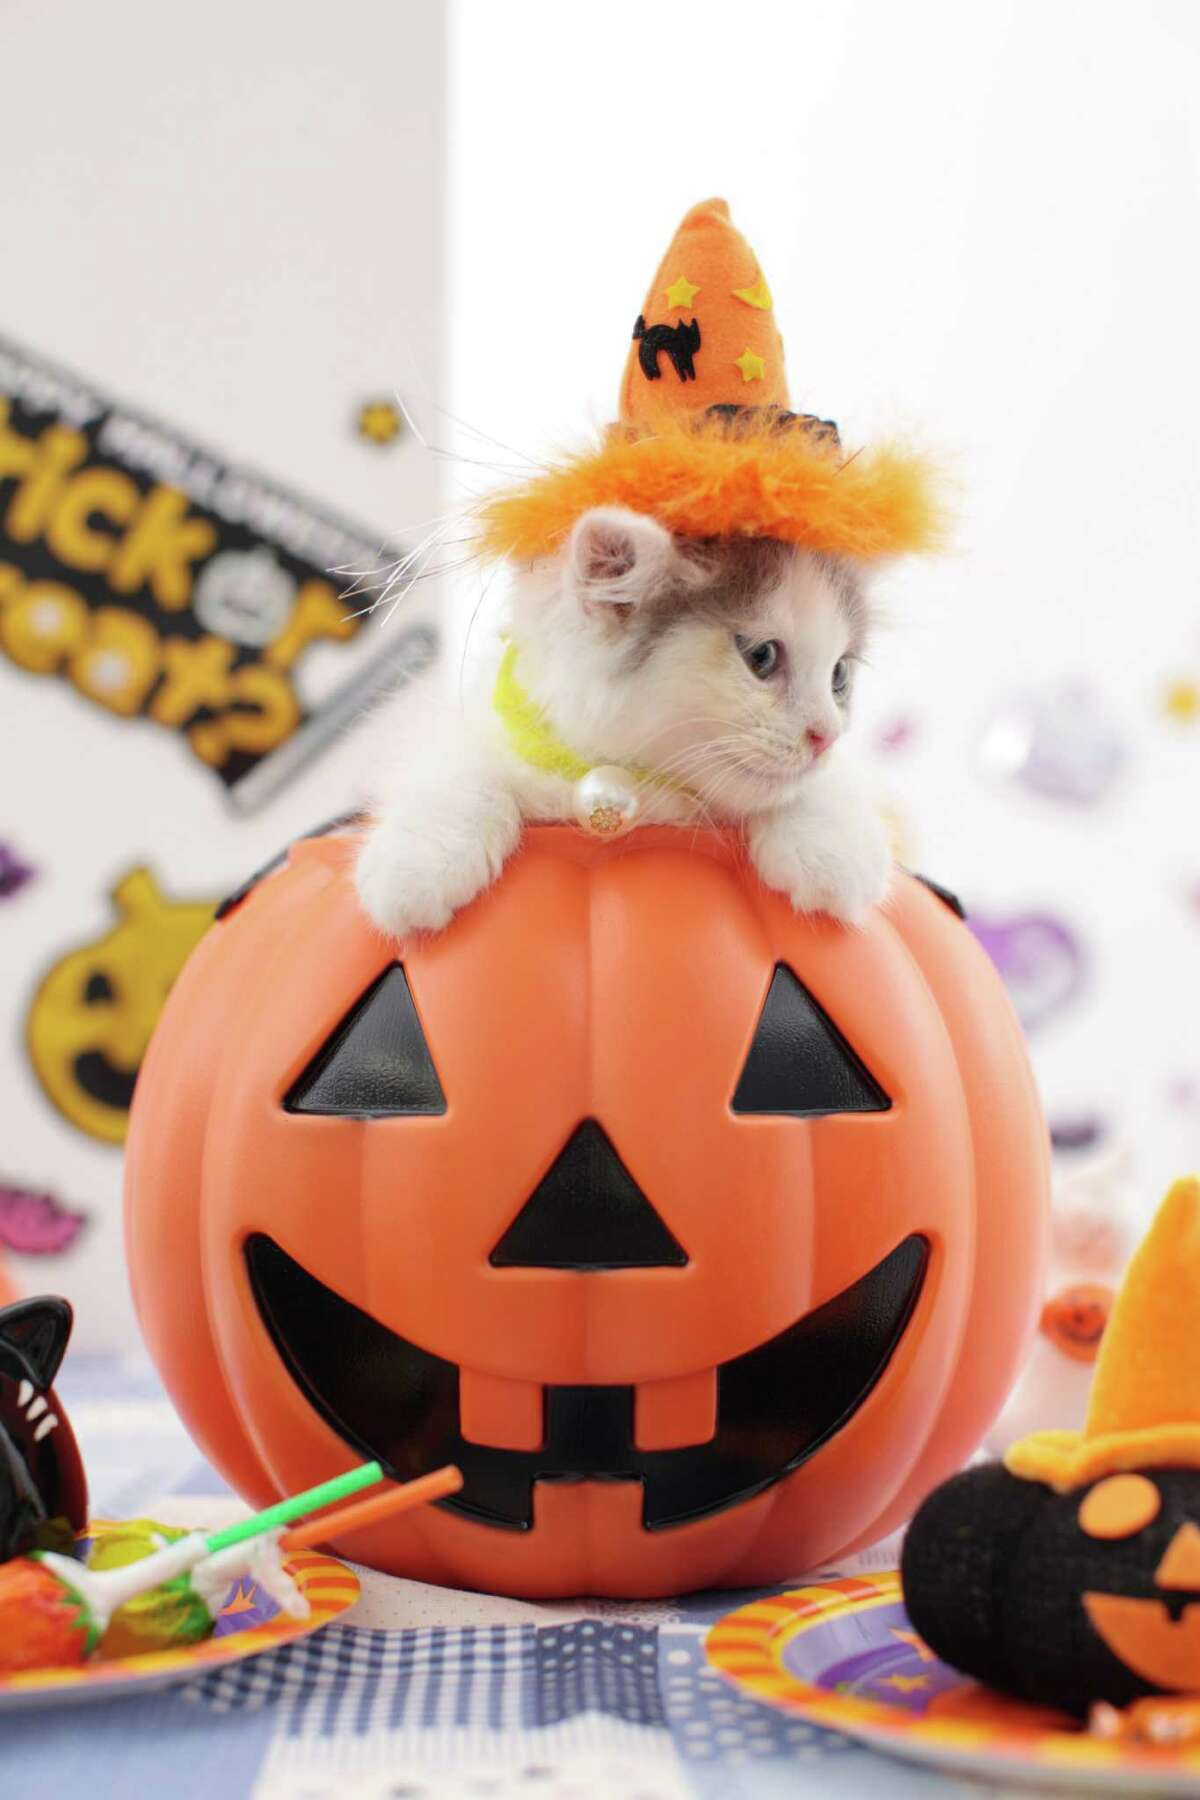 Putting a cat in a plastic pumpkin. Great photo idea, but remember: you have to sleep sometime.